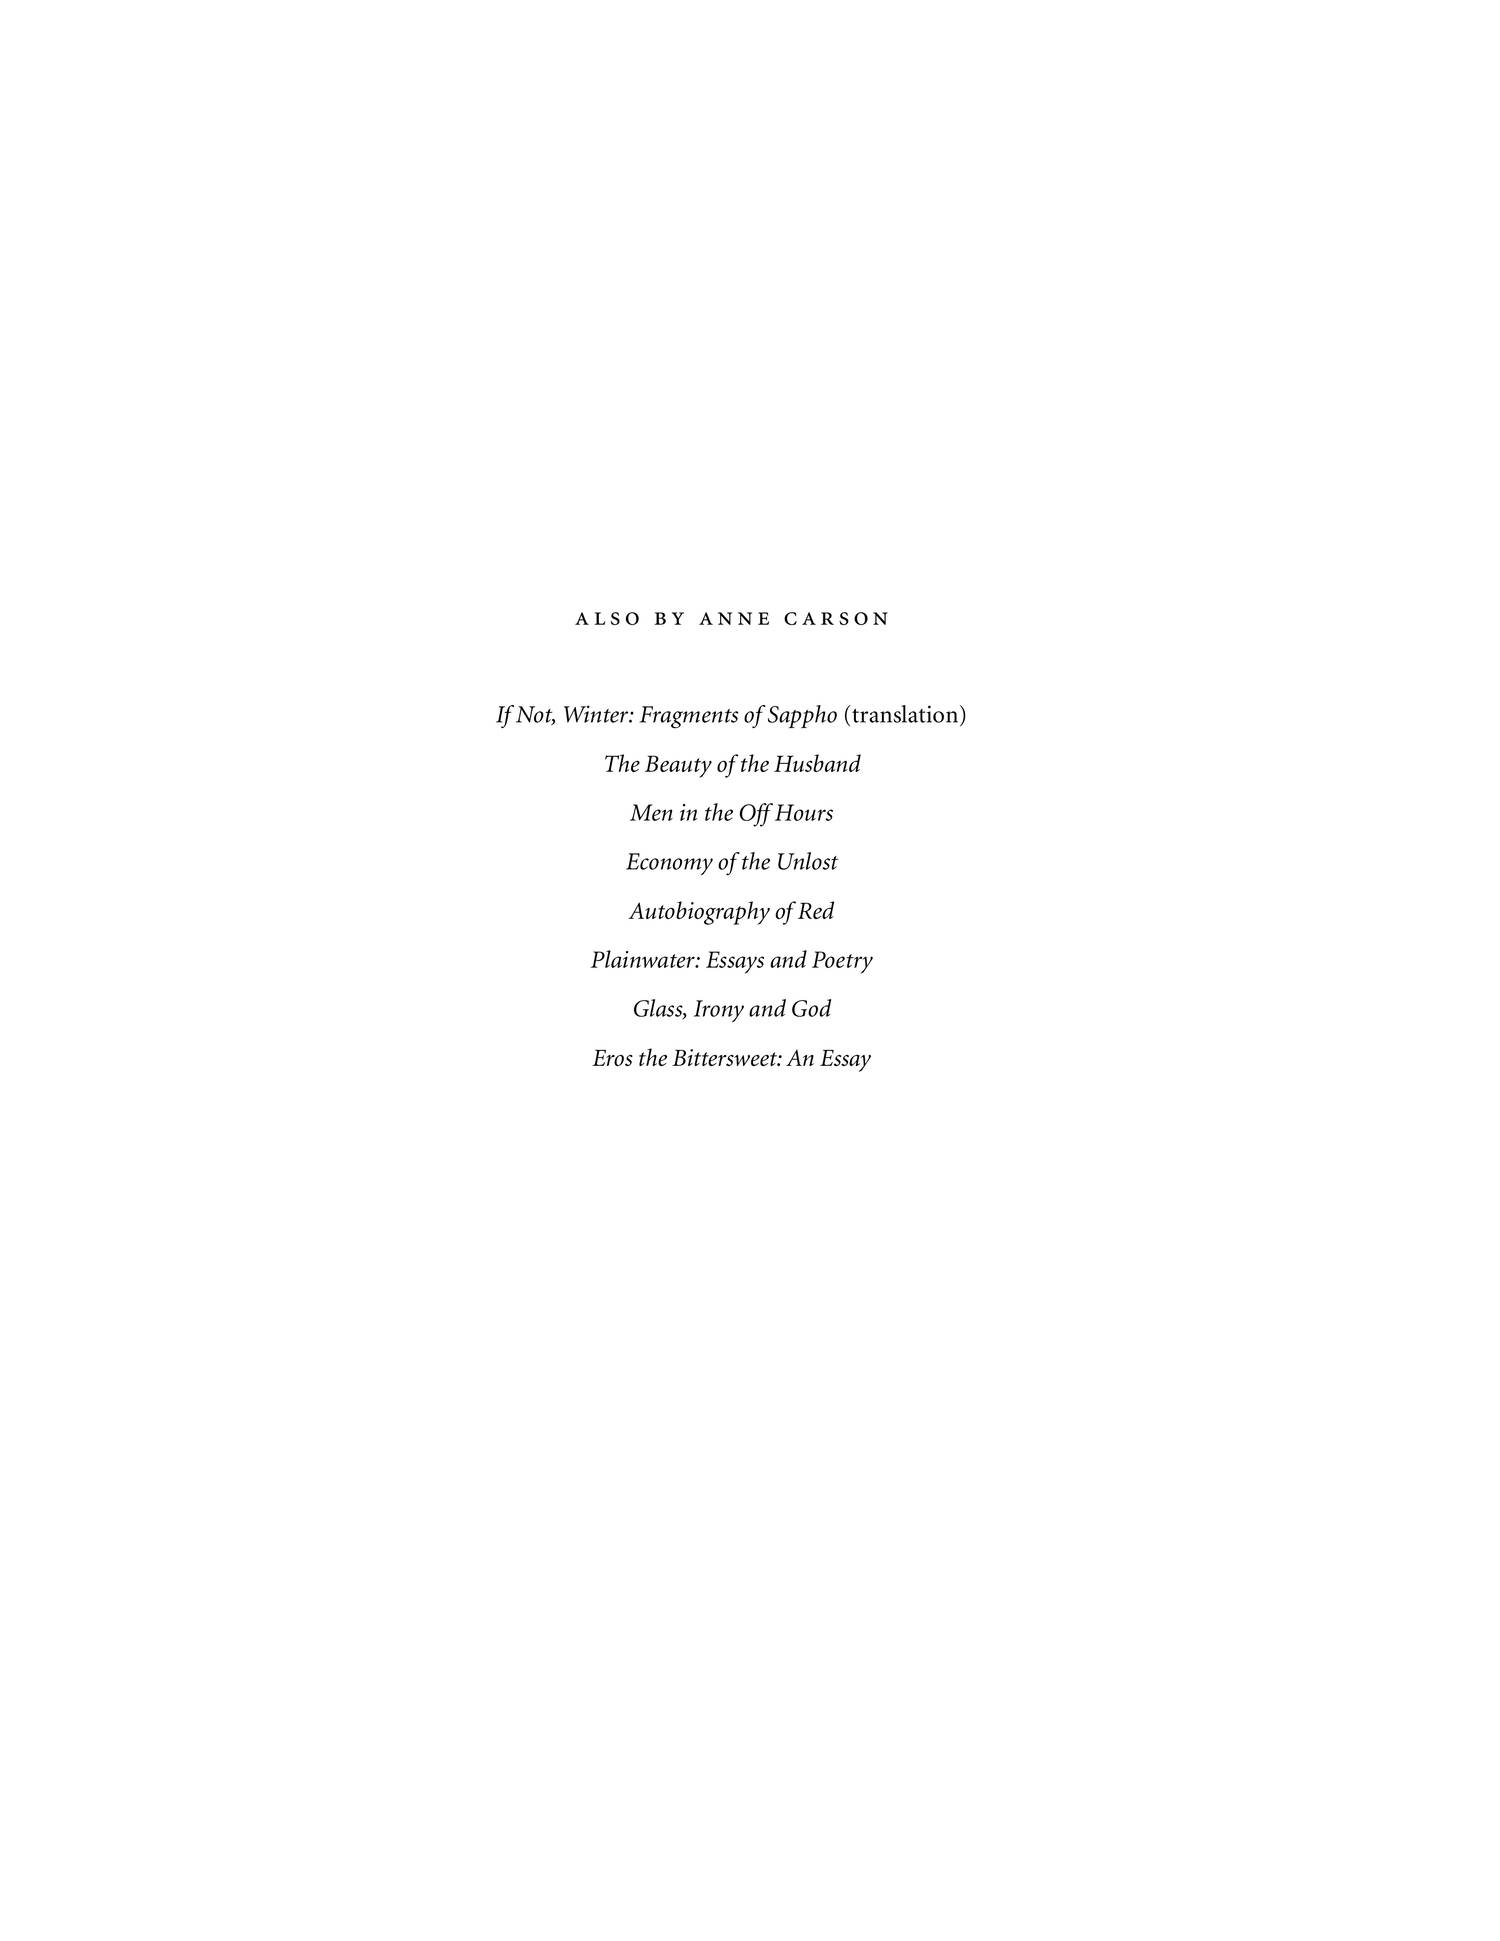 an essay of dramatick poesie An essay of dramatic poesy an essay of dramatic poesy annus mirabilisof dramatic poesie, an essay: another english poet, john dryden, in of dramatick poesie, an.